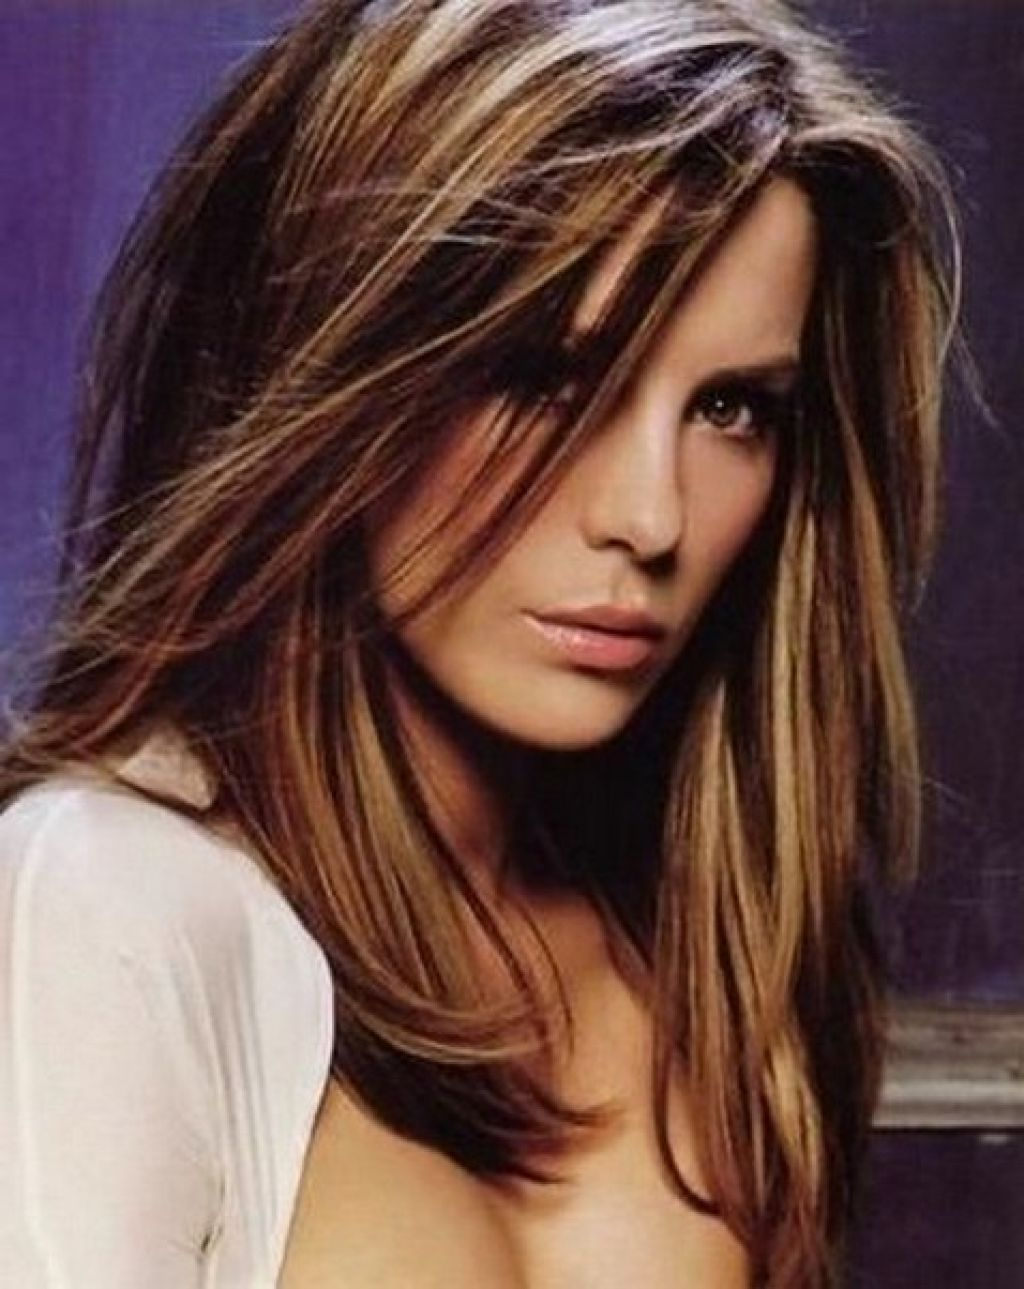 Images about hair colors and styles on pinterest - Find This Pin And More On My Style Brown Cinnamon Hair Color